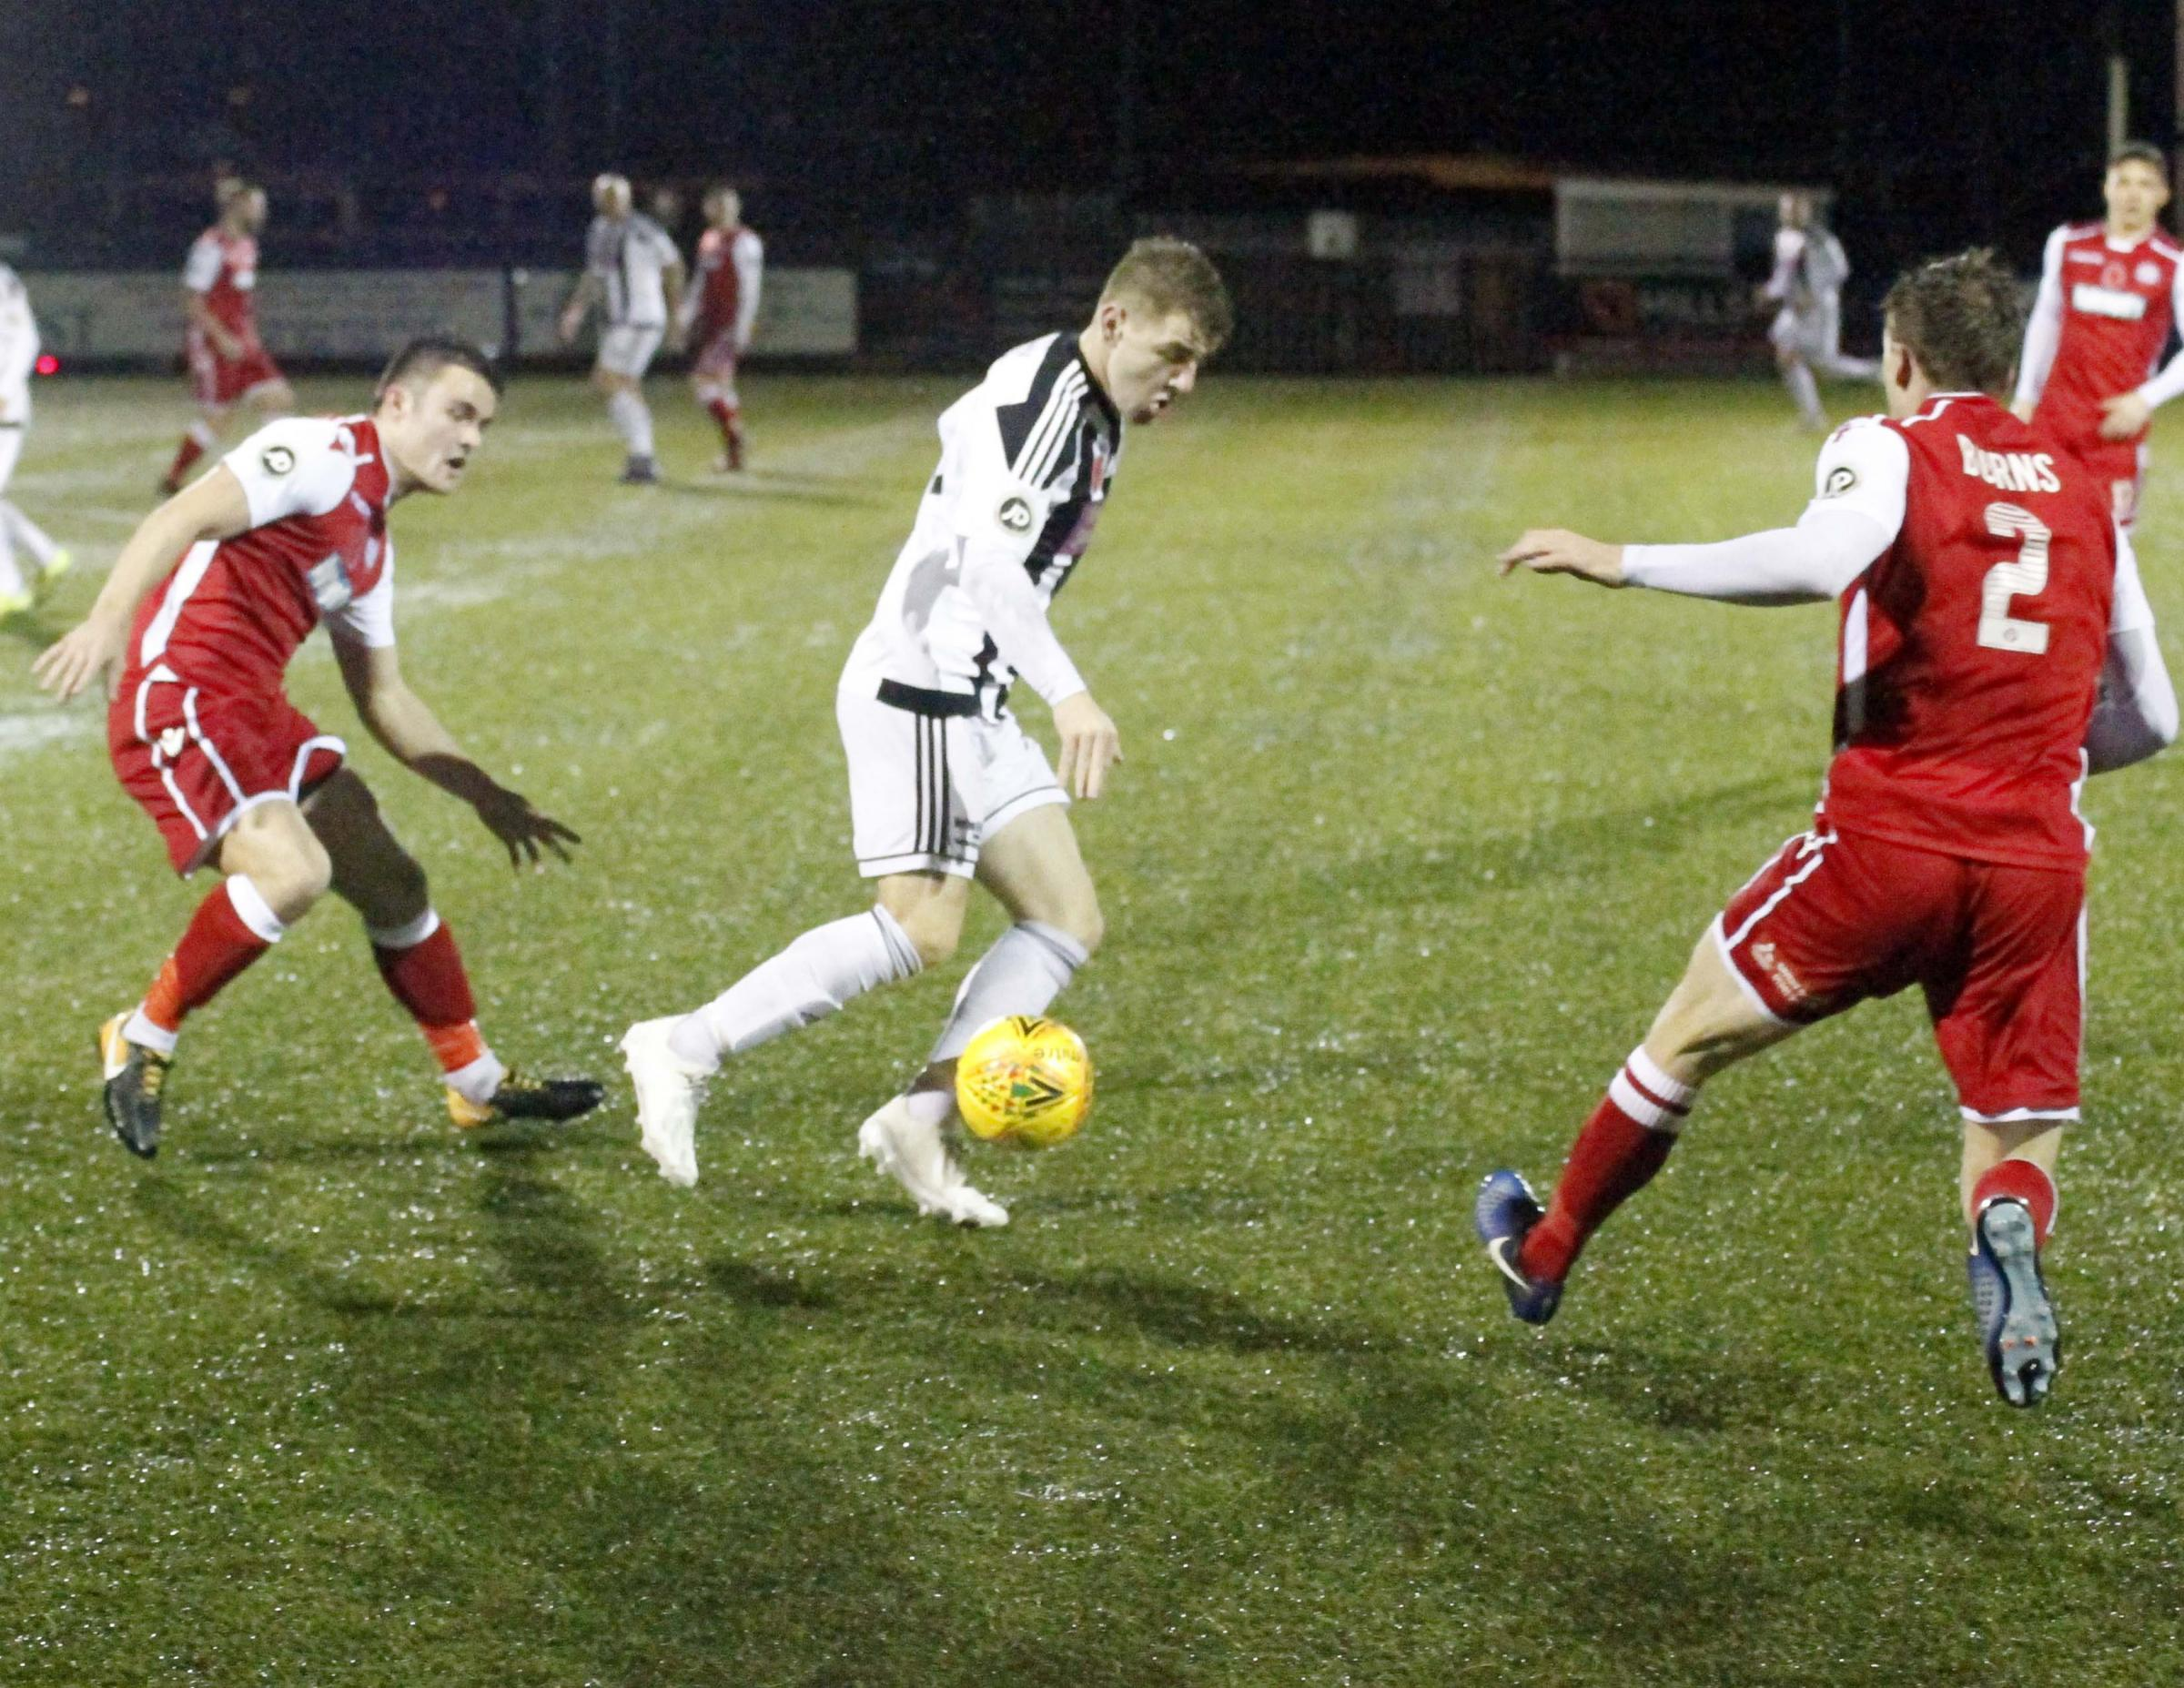 George Harry opened the scoring for Llandudno in their defeat at Llanelli Town (Photo by Dave Thomas)